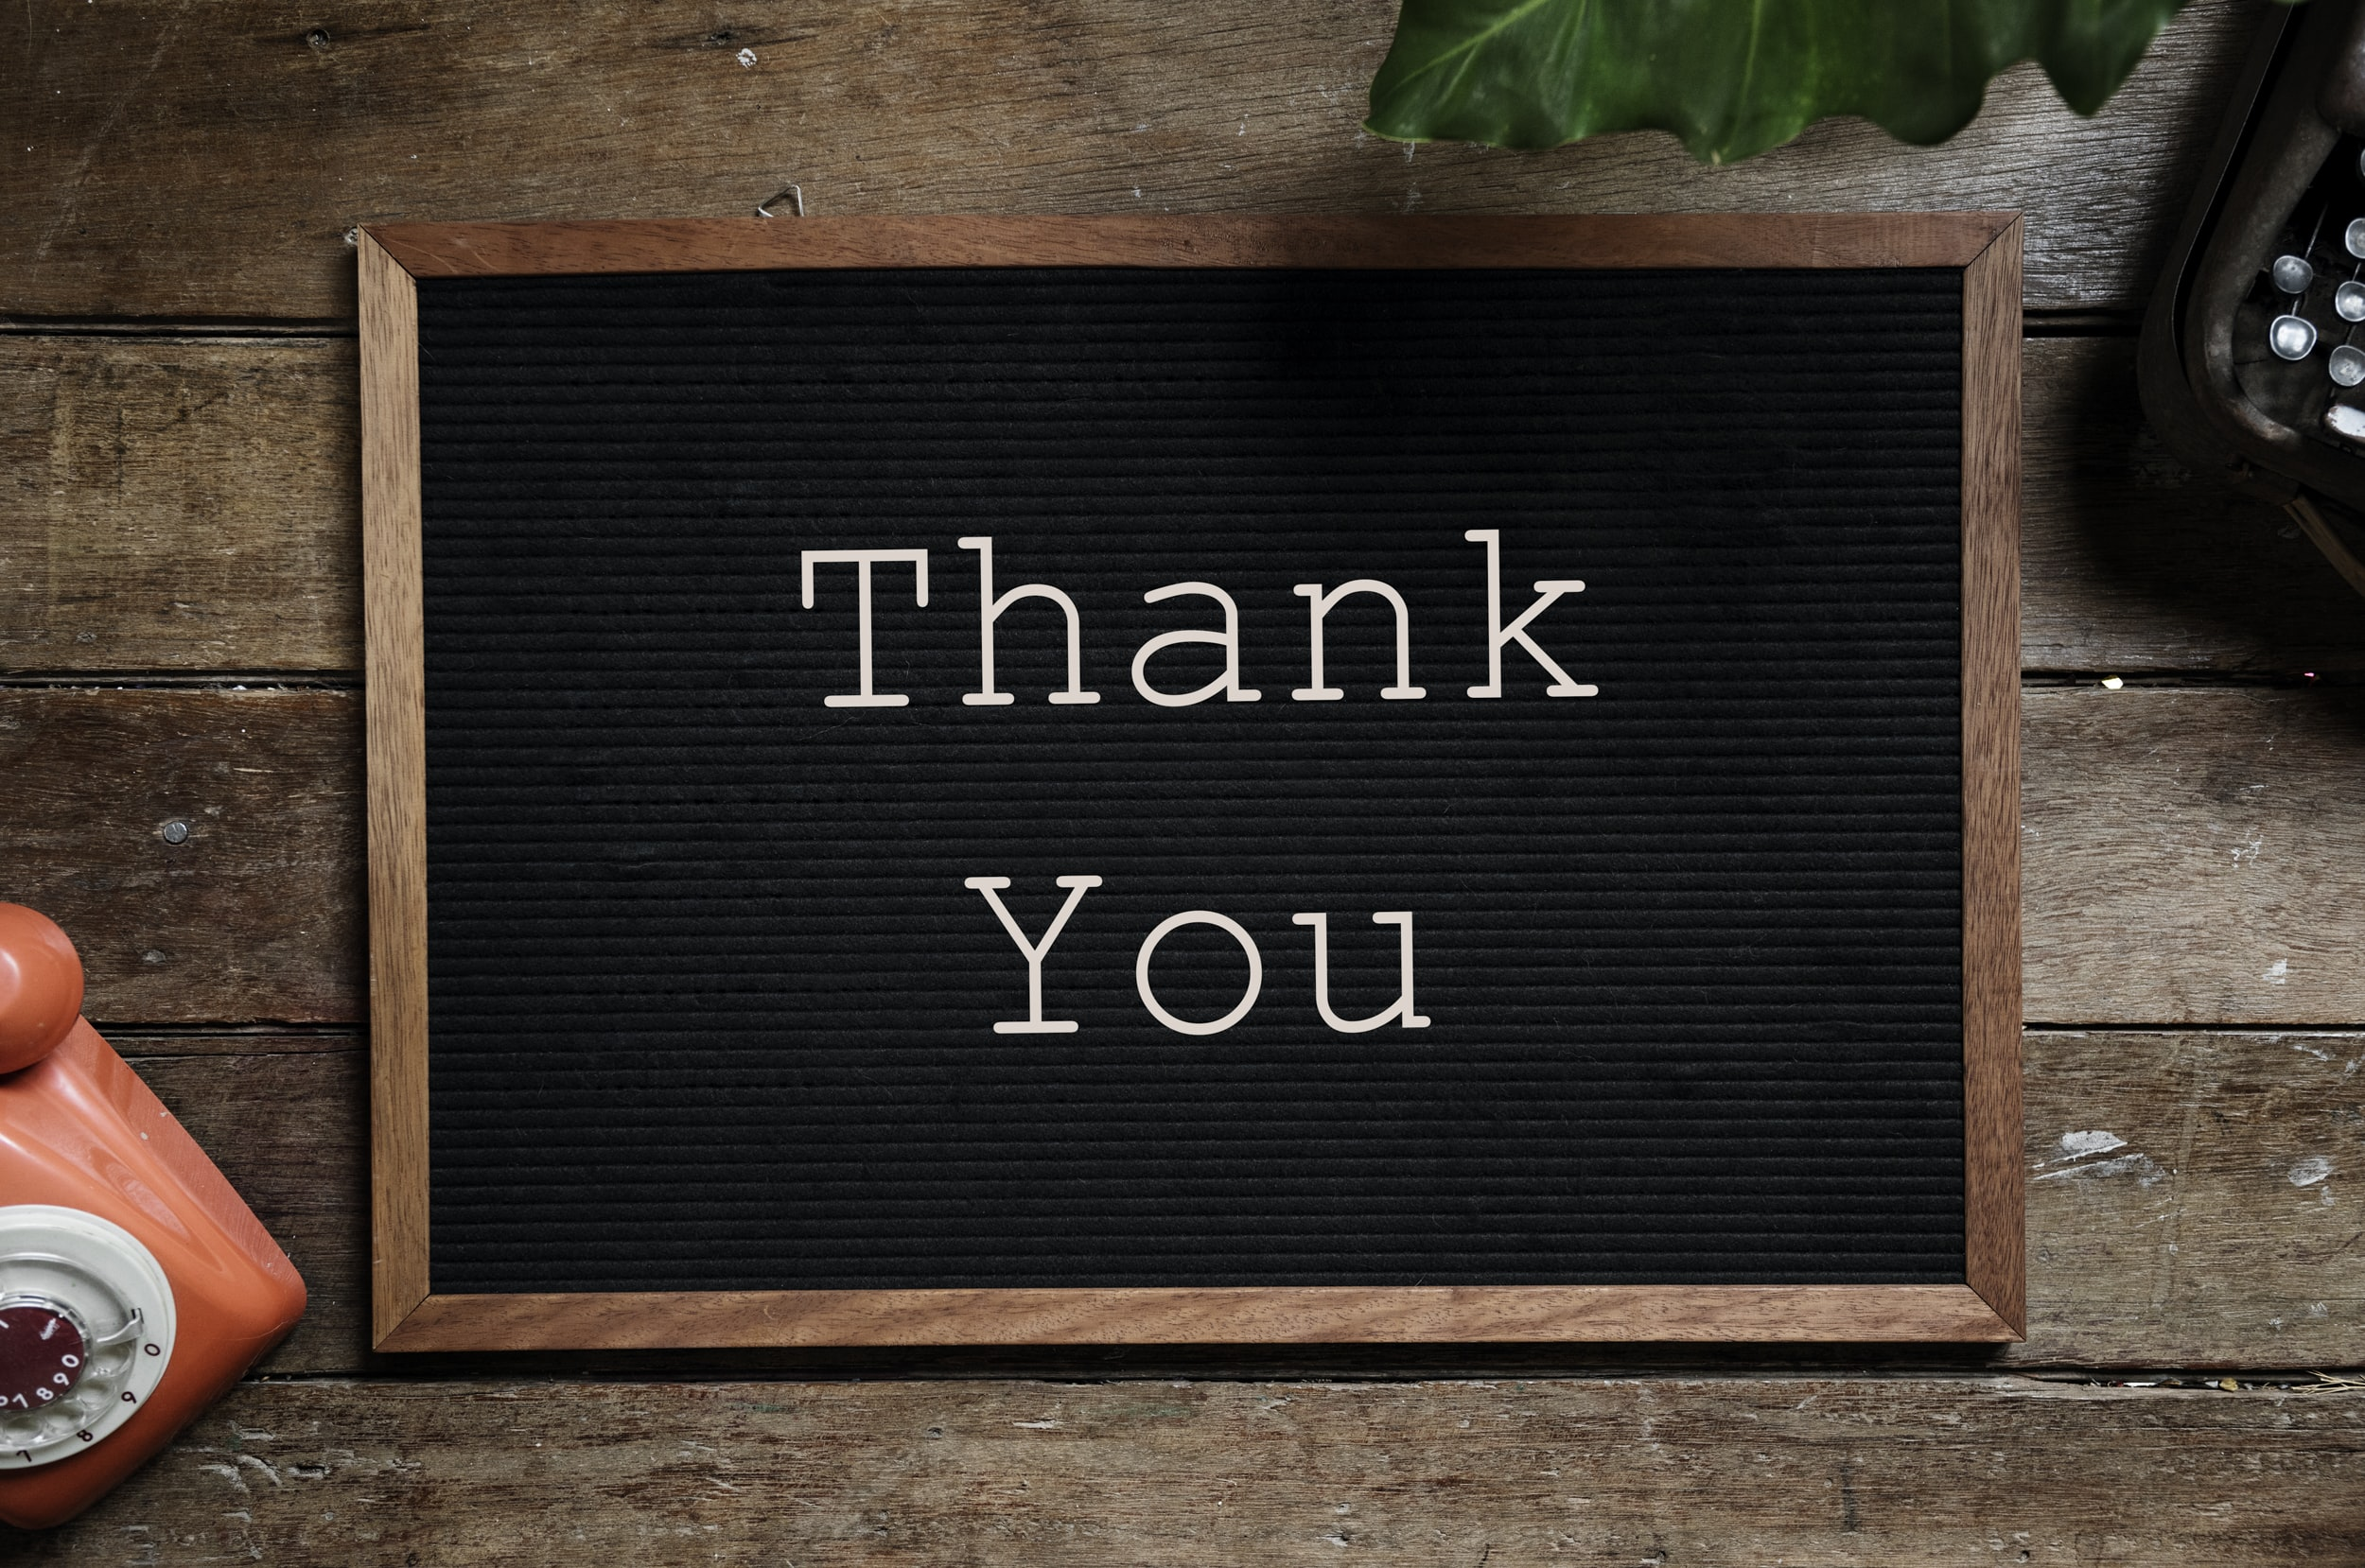 Thank you Photo by rawpixel Unsplash - Revealing WINNERS and Wrapping Up the #AtoZChallenge 2018 Event Feedback DAY FIVE